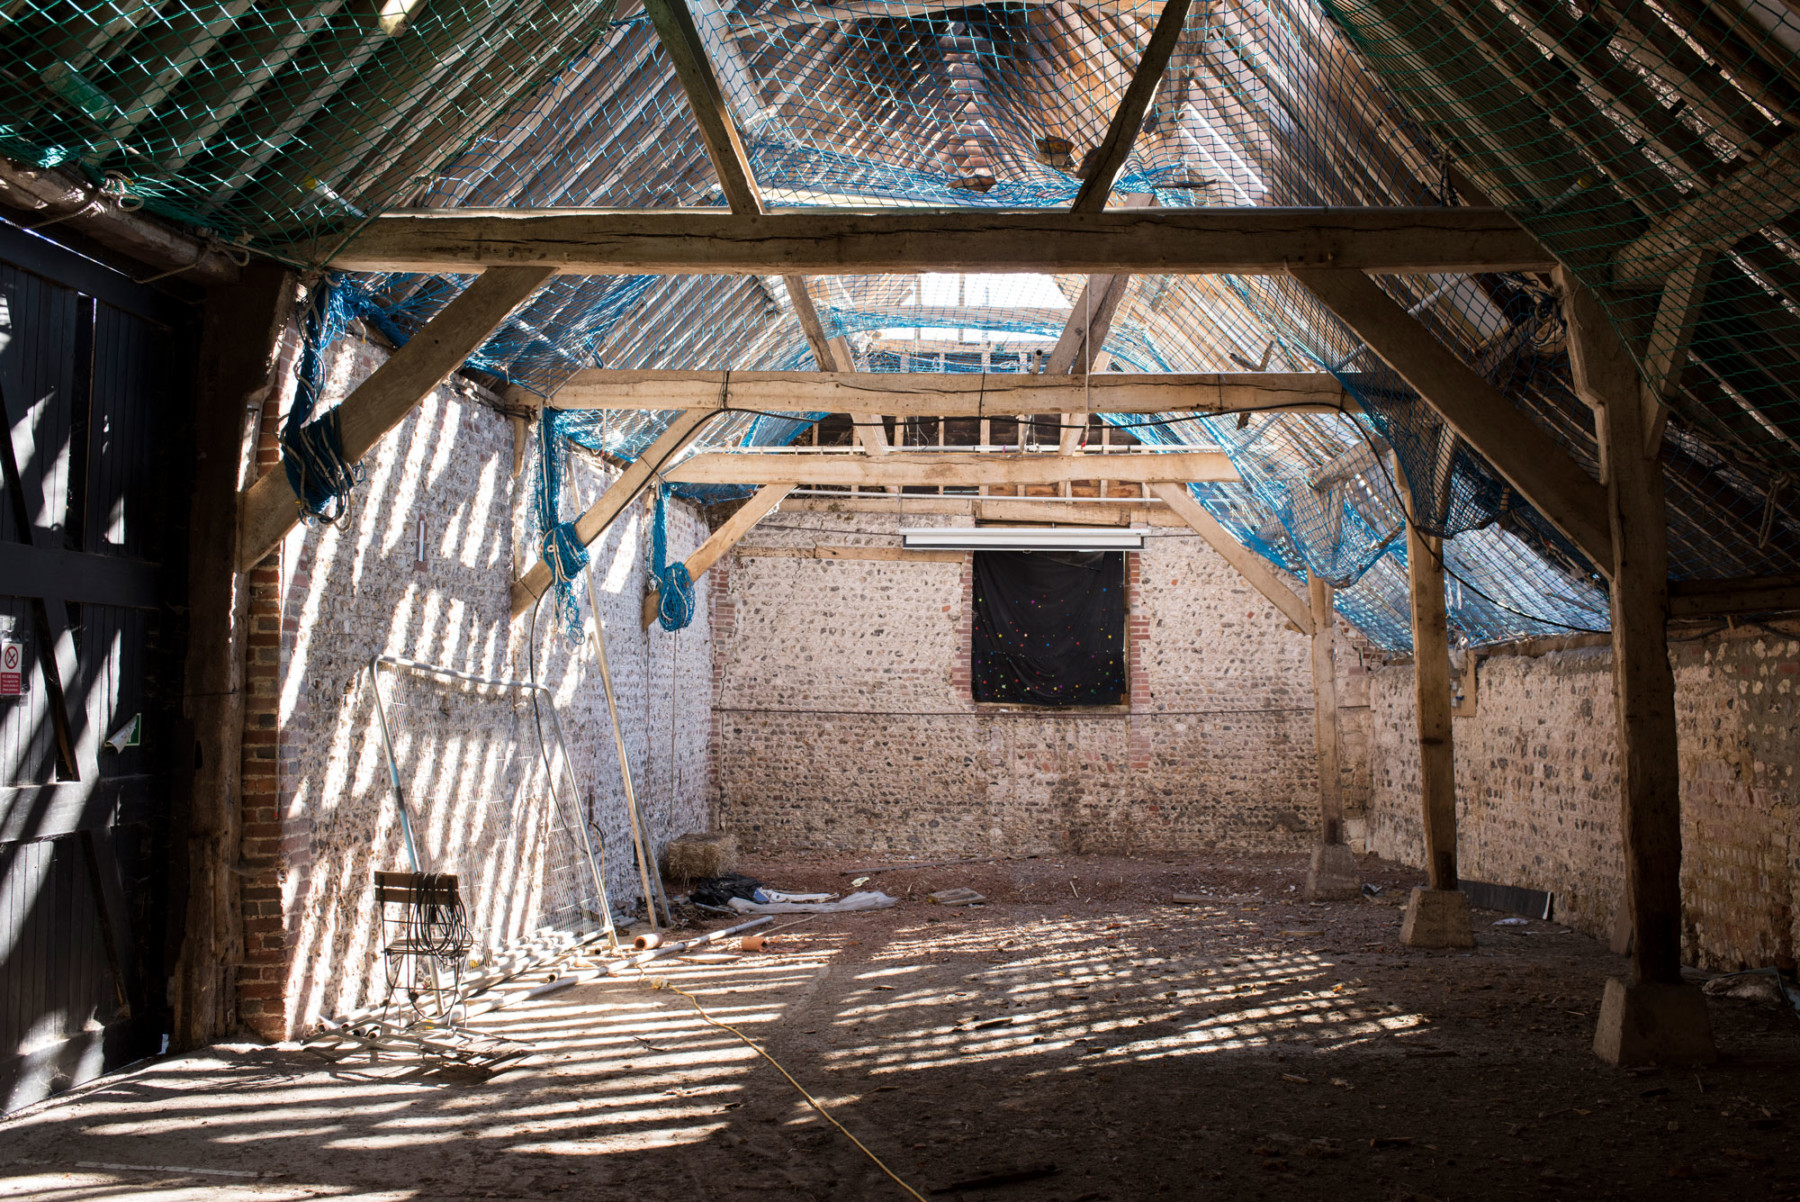 charleston-barns-timber-gallery-historic-fabric-restoration-jamie-fobert3